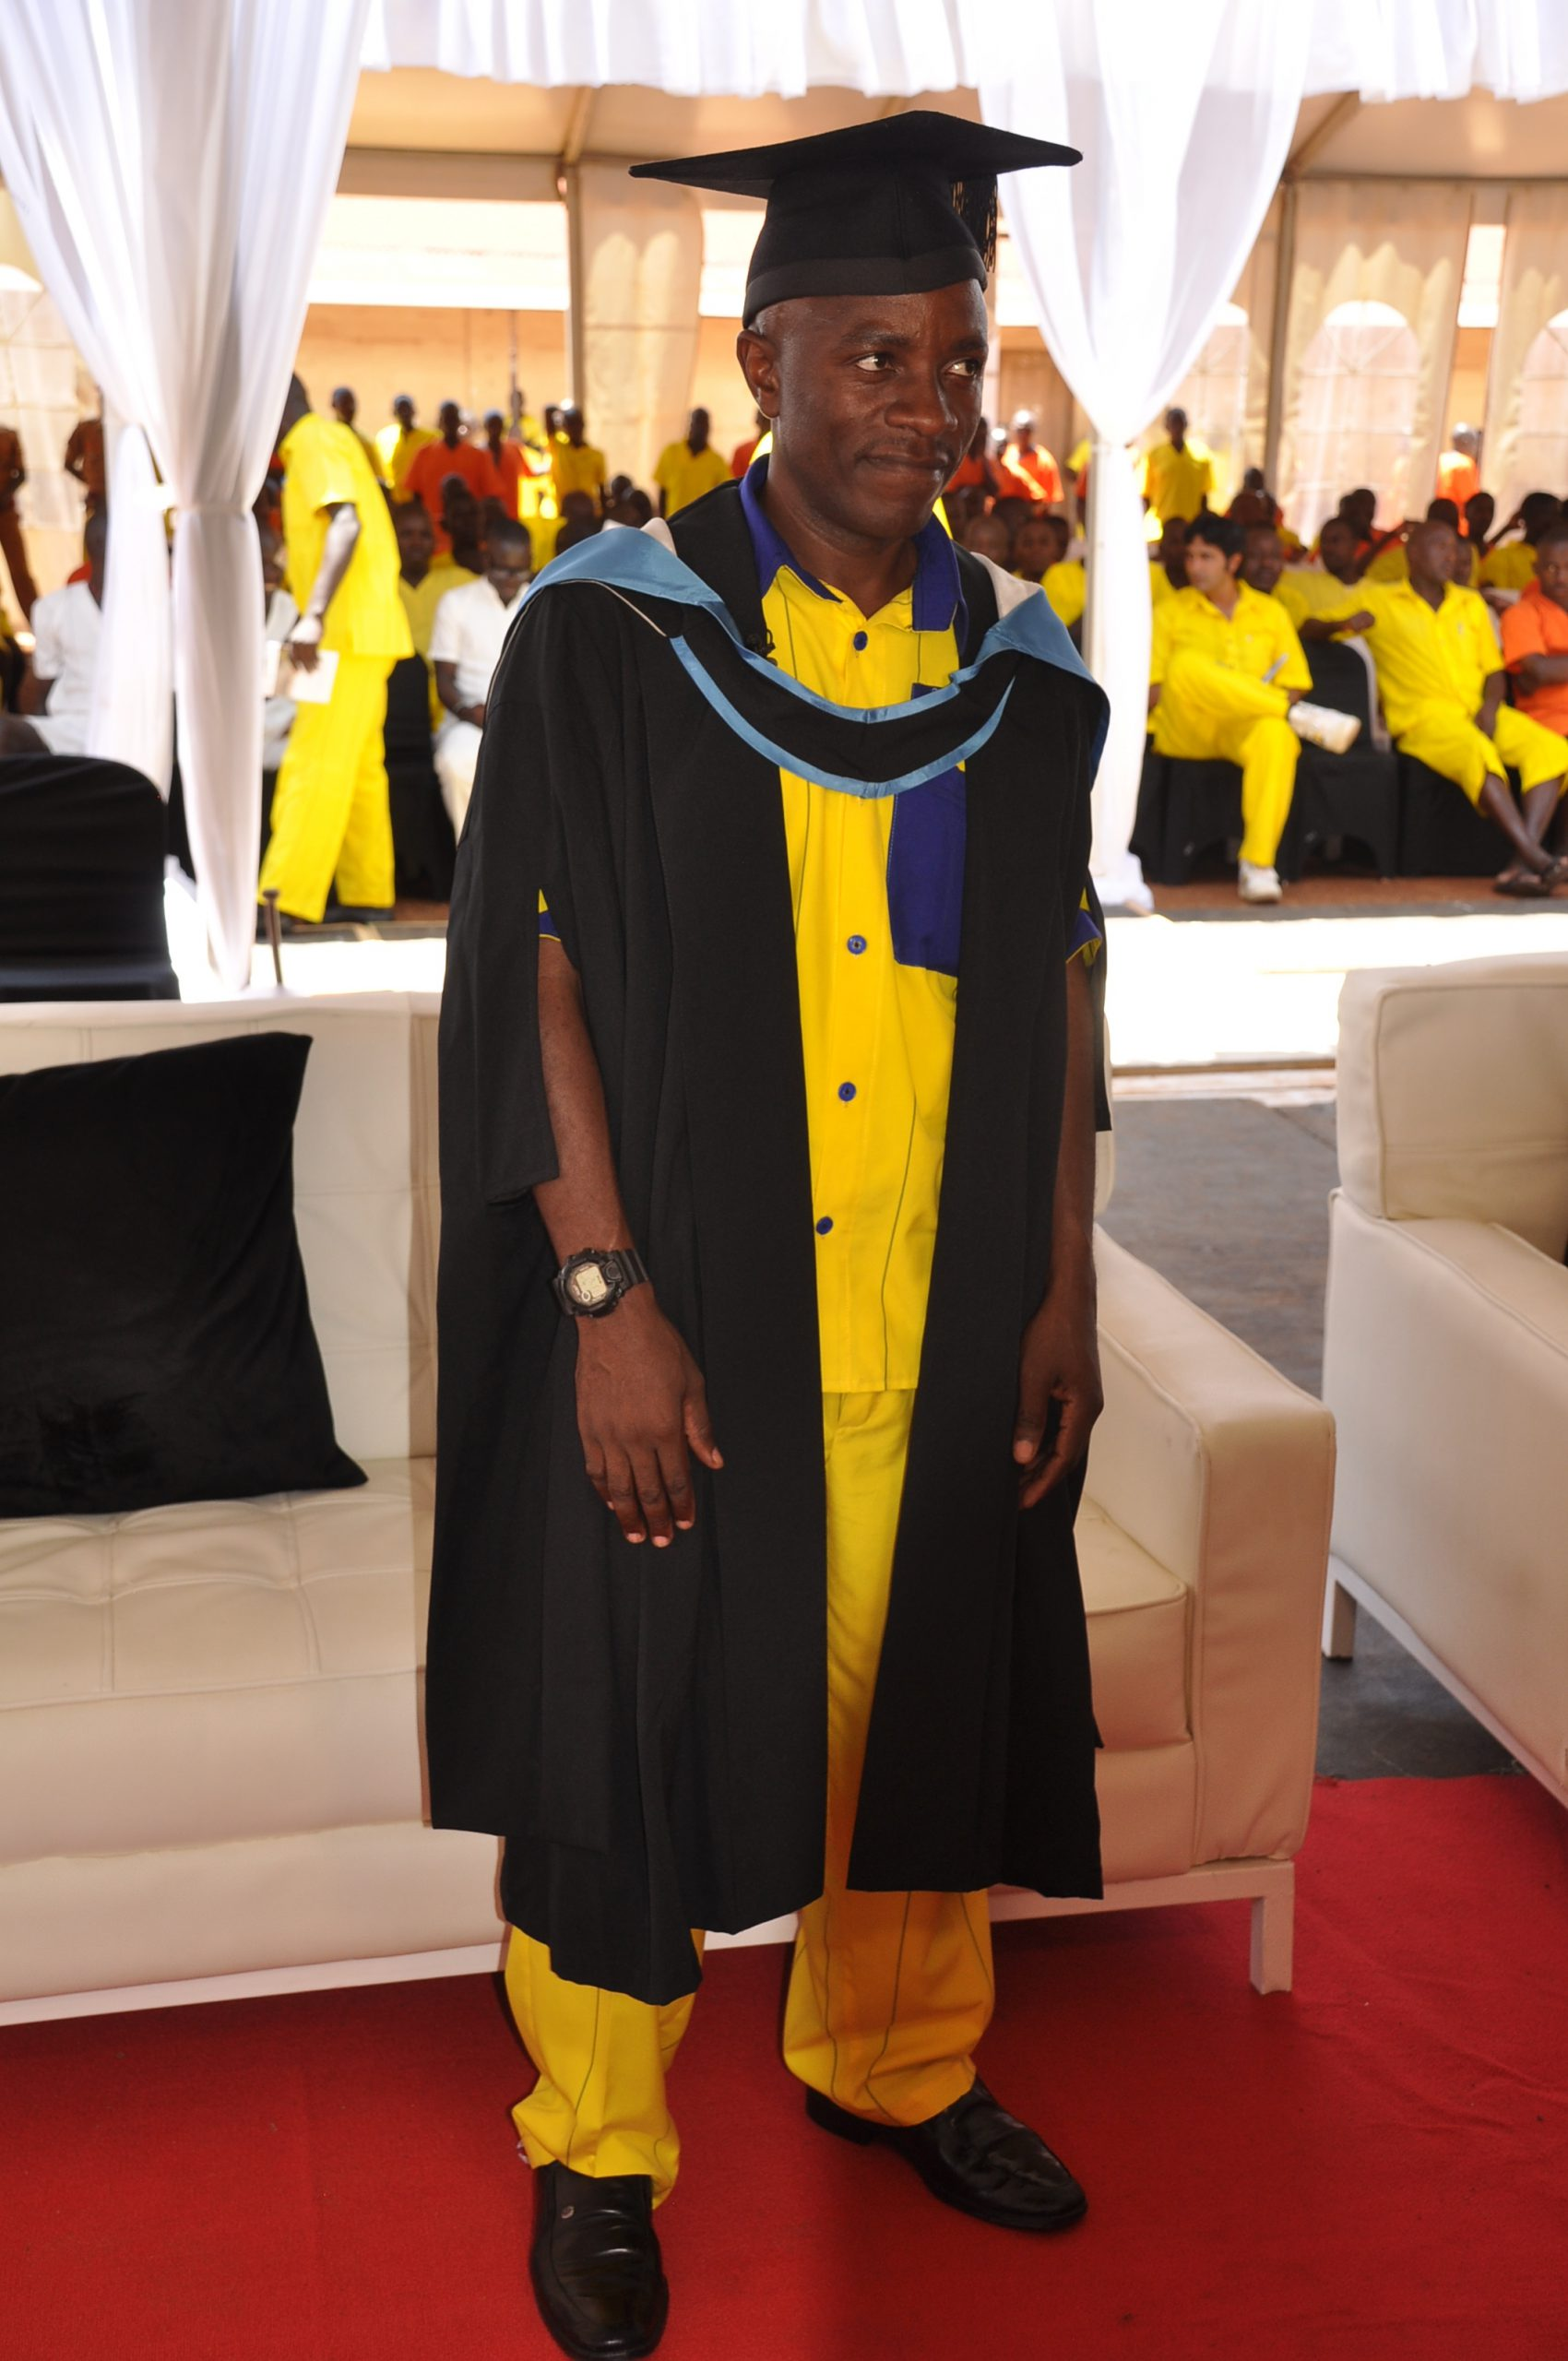 Pascal Kakuru: The Law Graduate